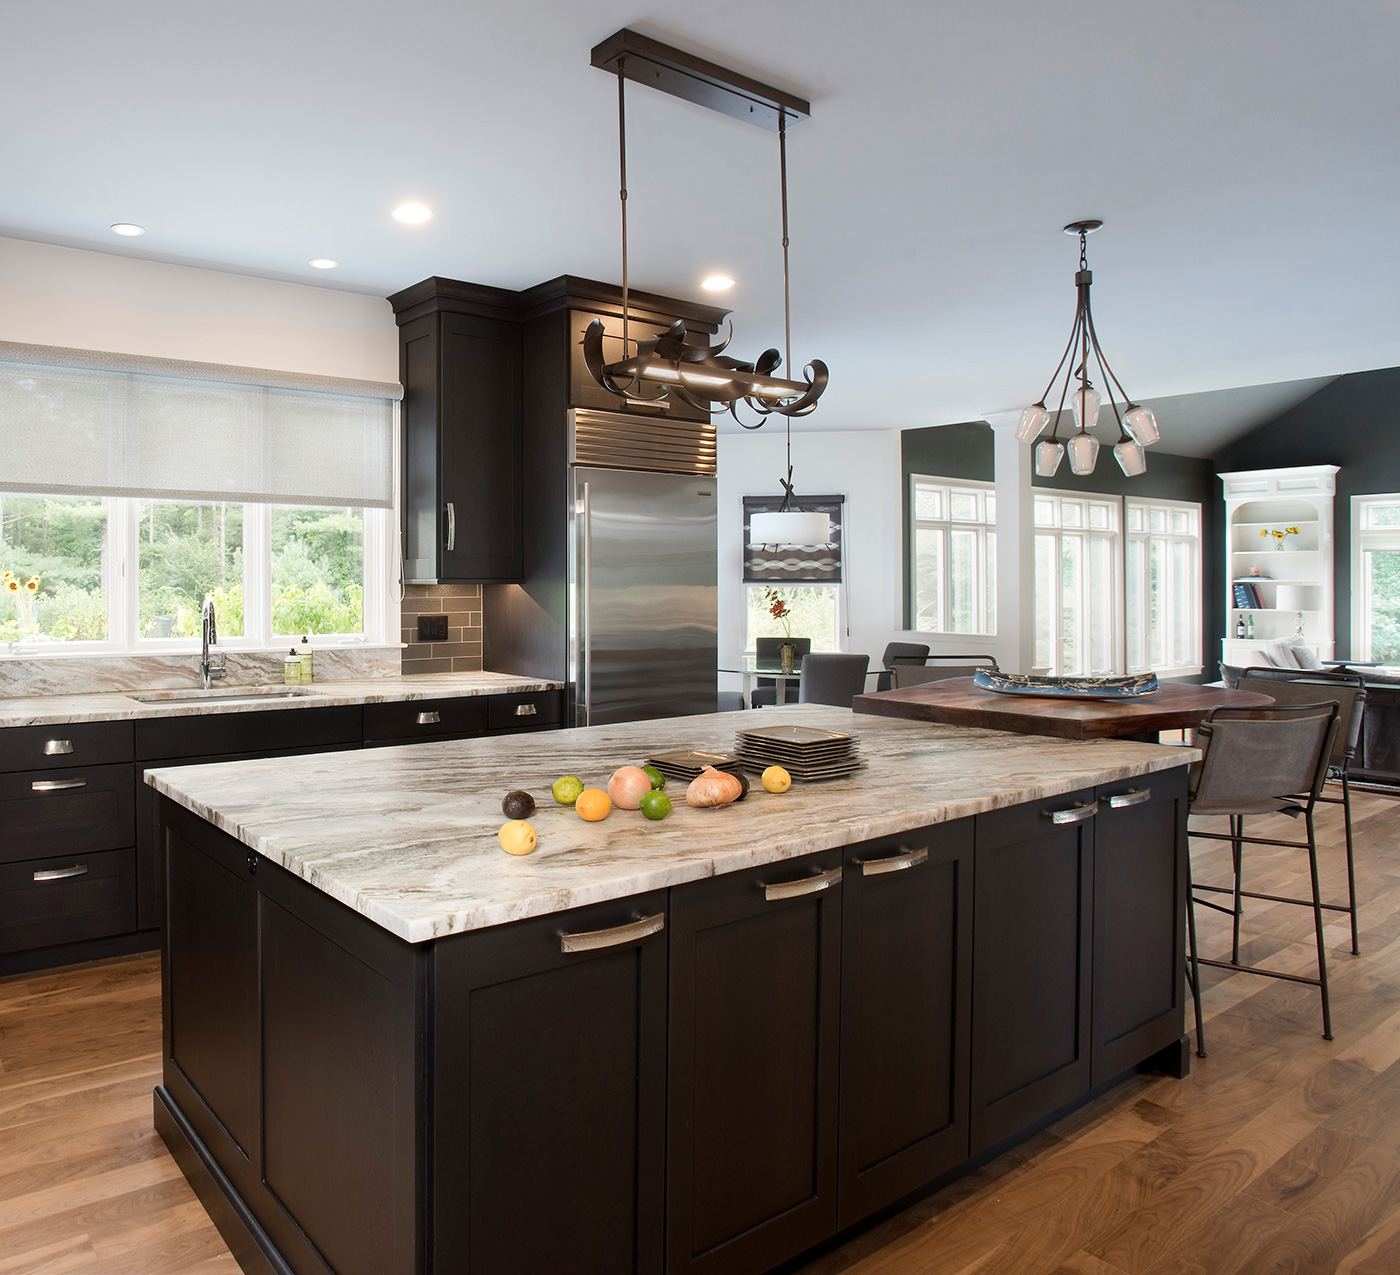 Roomscapes Cabinetry & Design Center contemporary kitchen transformation